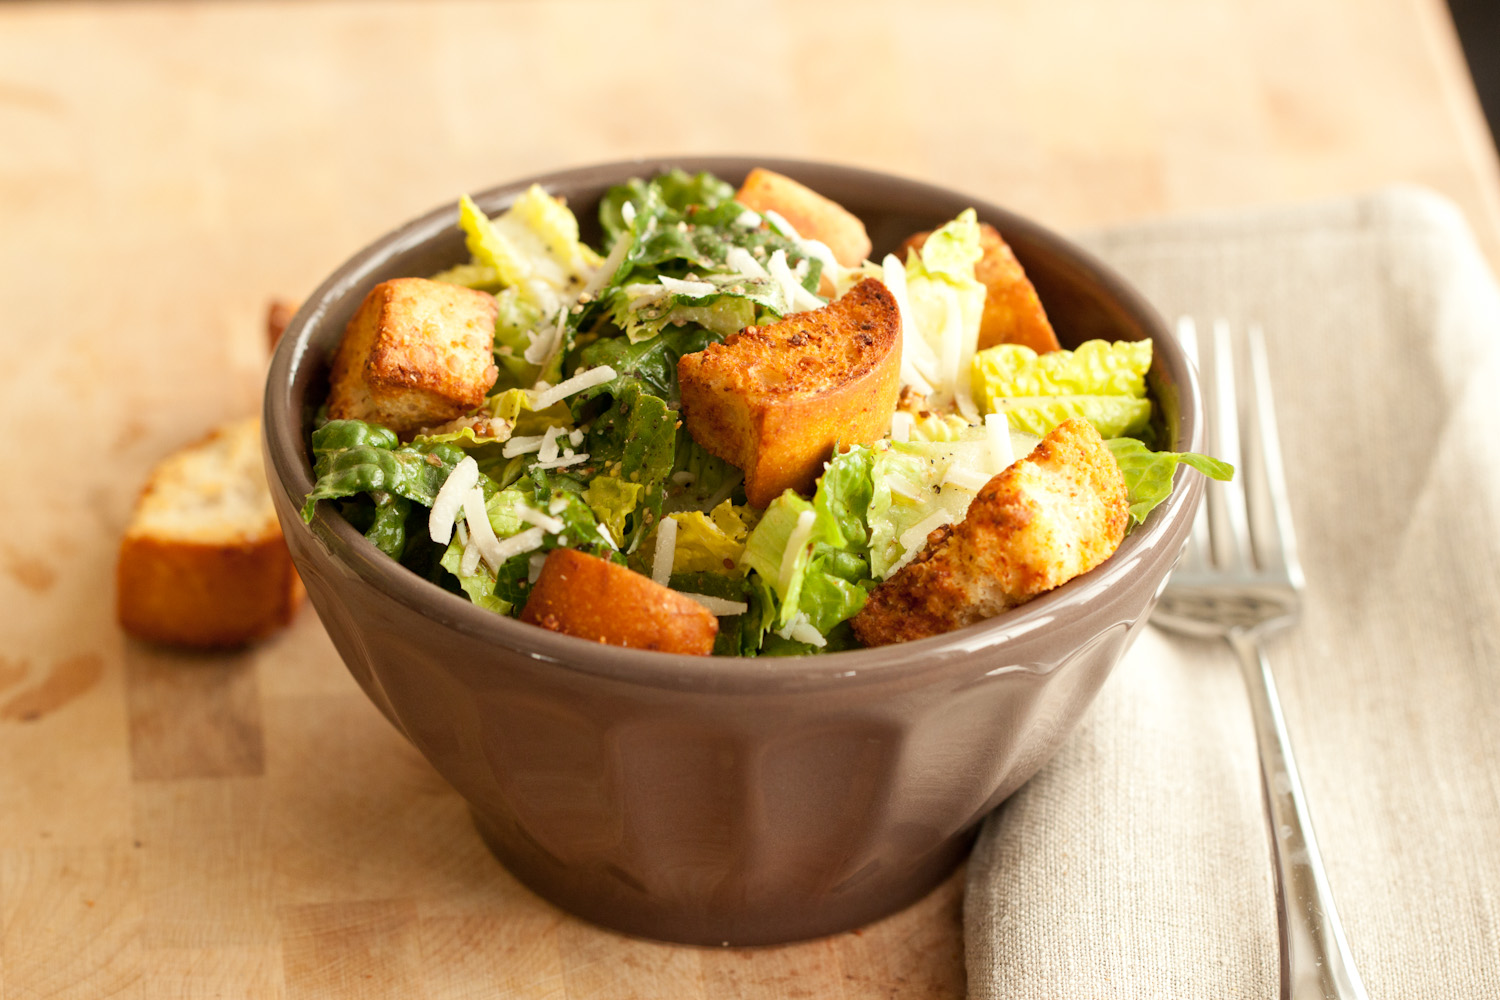 CUP OF JO: The Best Caesar Salad (with a new dressing)